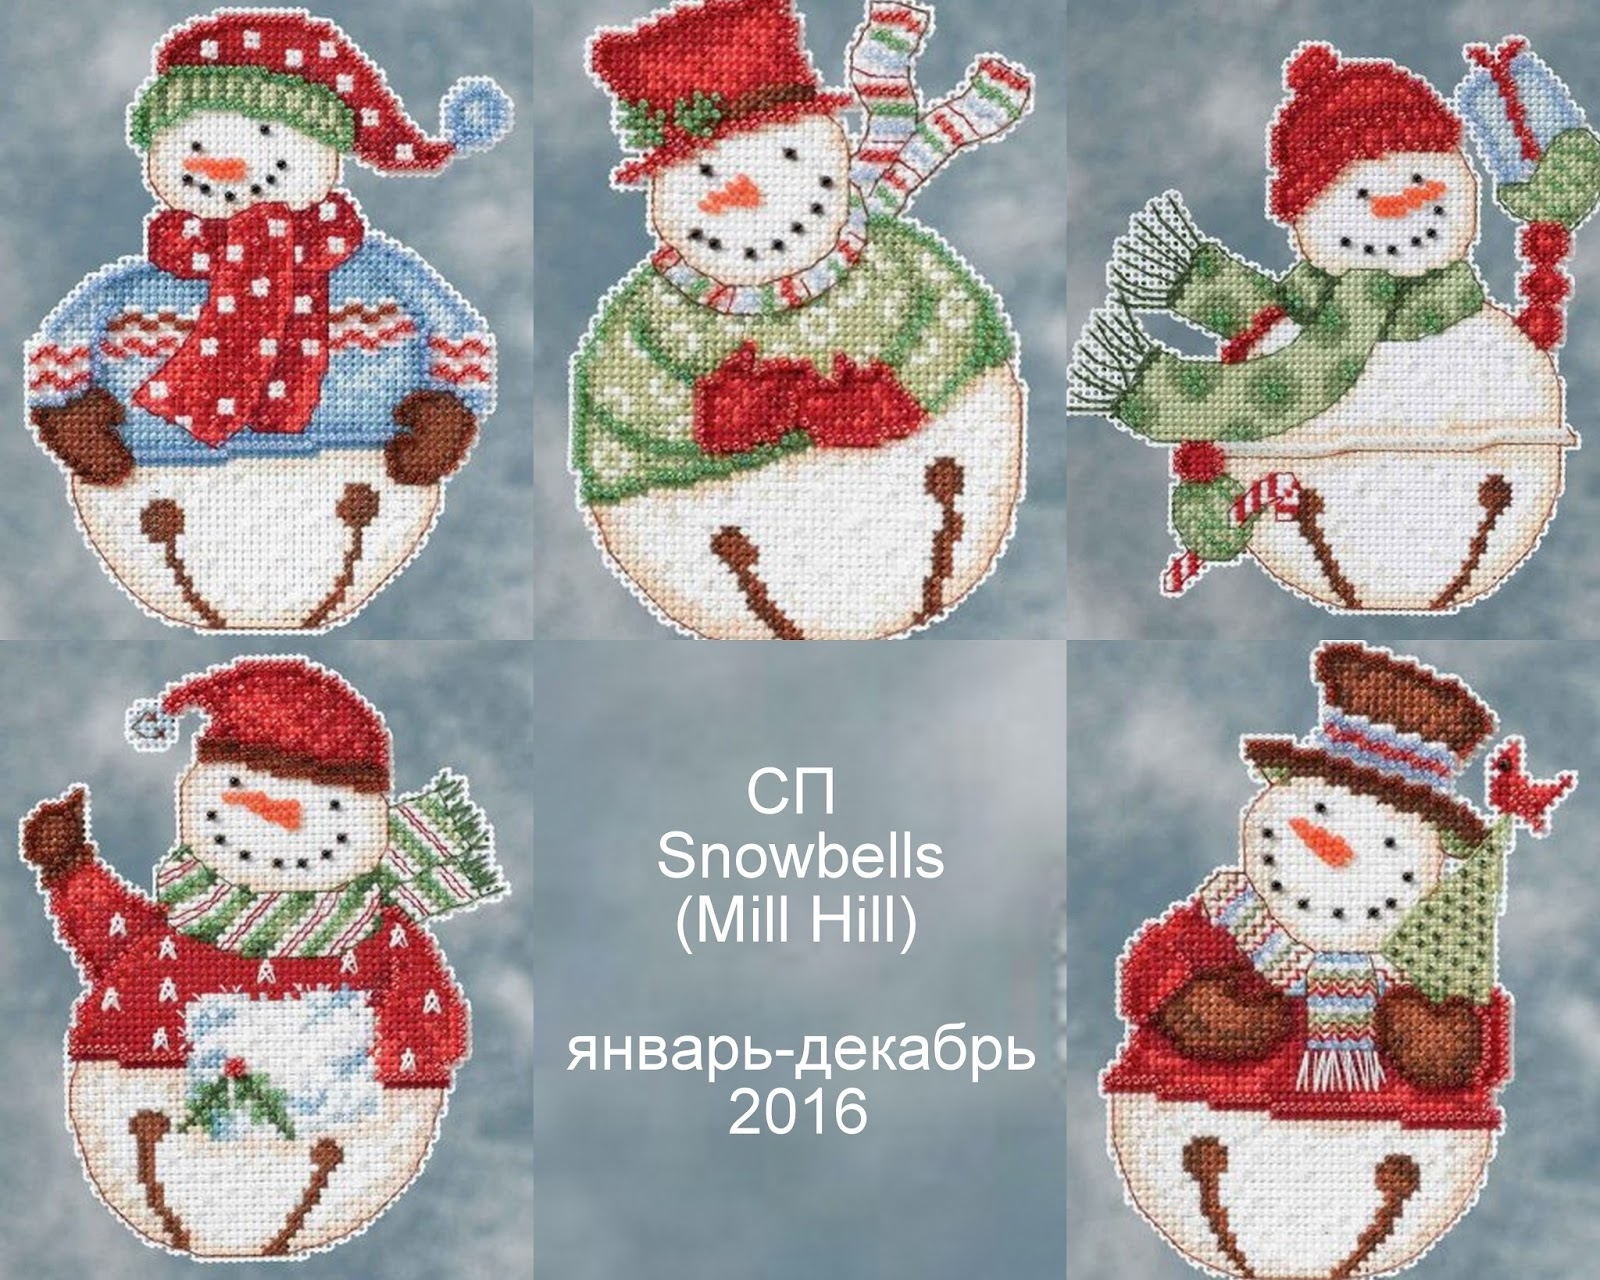 СП Snowbells ( Mill Hill)